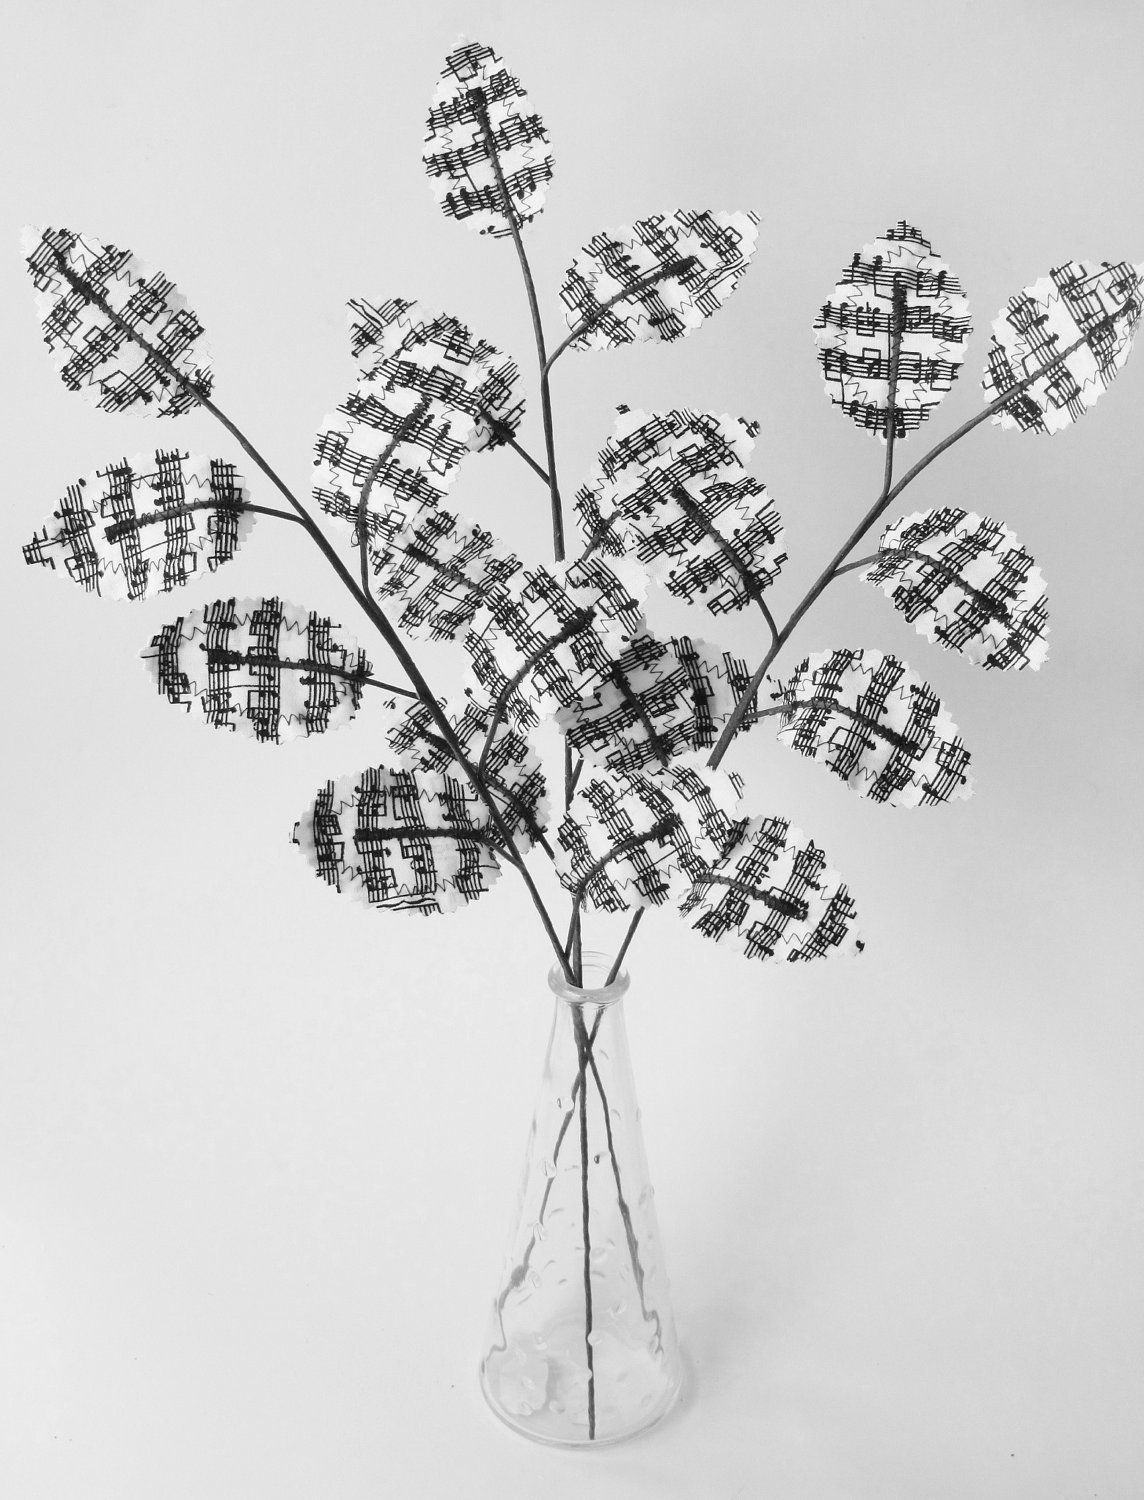 Fabric leaves black and white sheet music musical notes branches fabric leaves black and white sheet music musical notes branches gift idea for music lover reviewsmspy